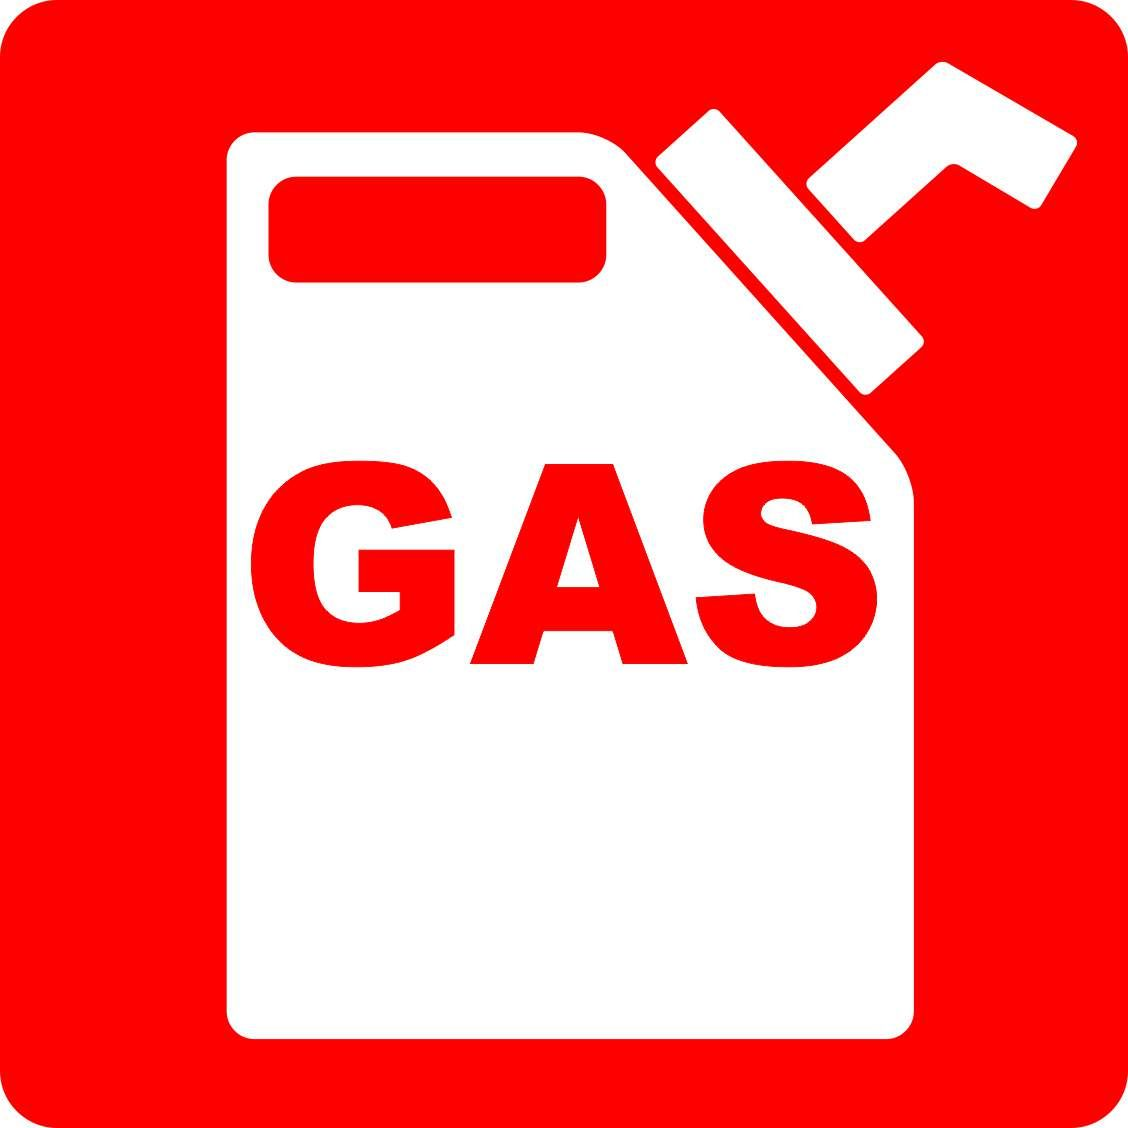 In X In Gas Sticker Vinyl Signs Stickers Car Fuel Safety Truck - Vinyl decal car signs